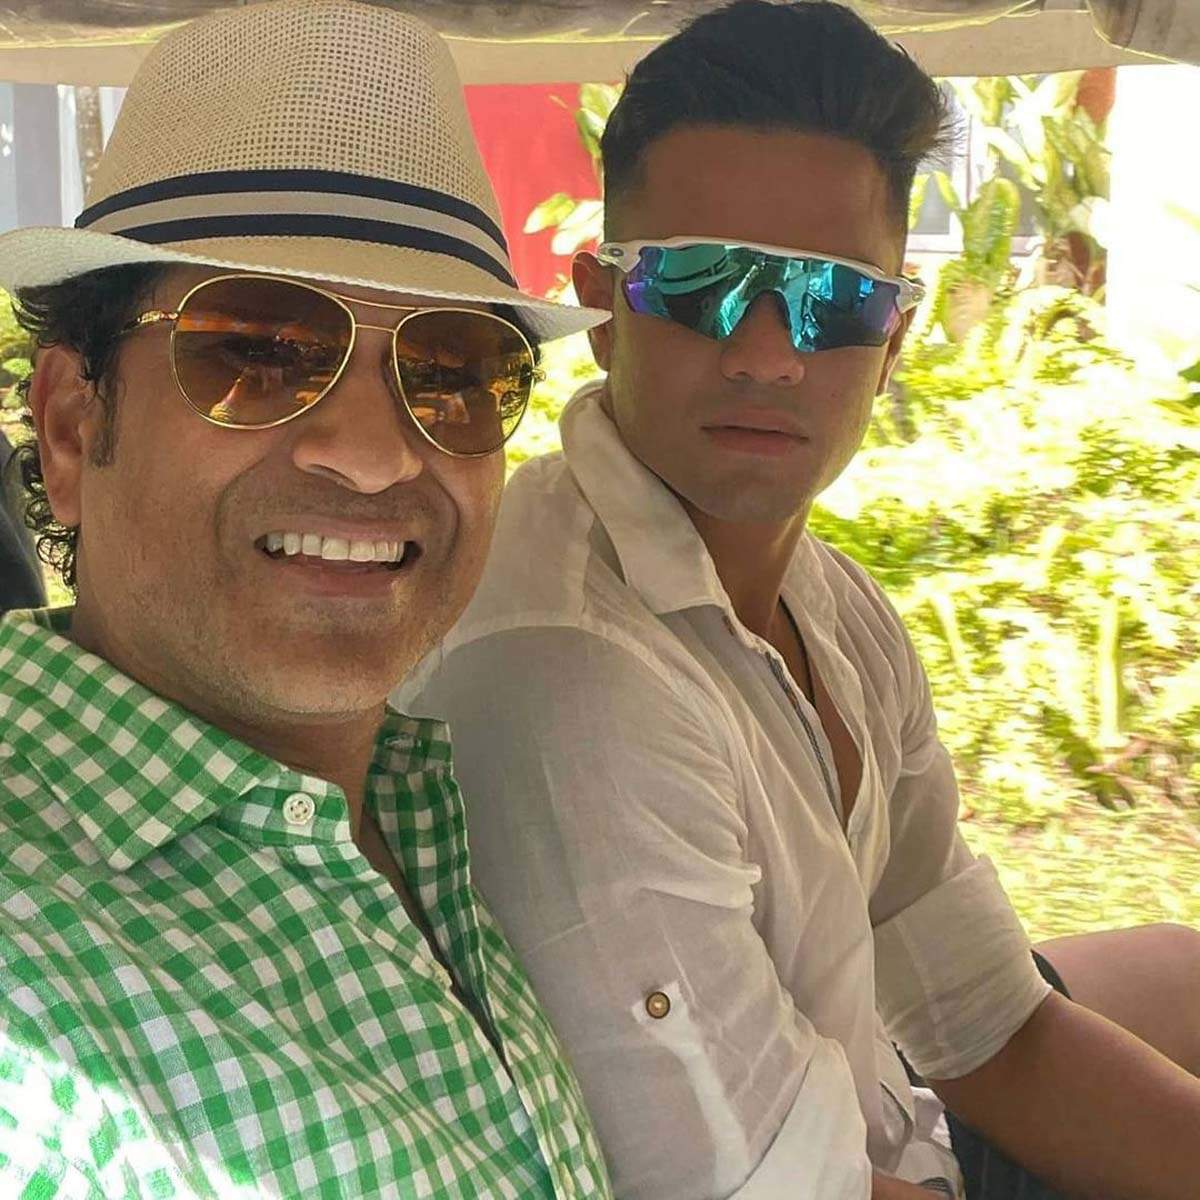 Sachin Tendulkar's latest vacation pictures leave netizens burning with curiosity